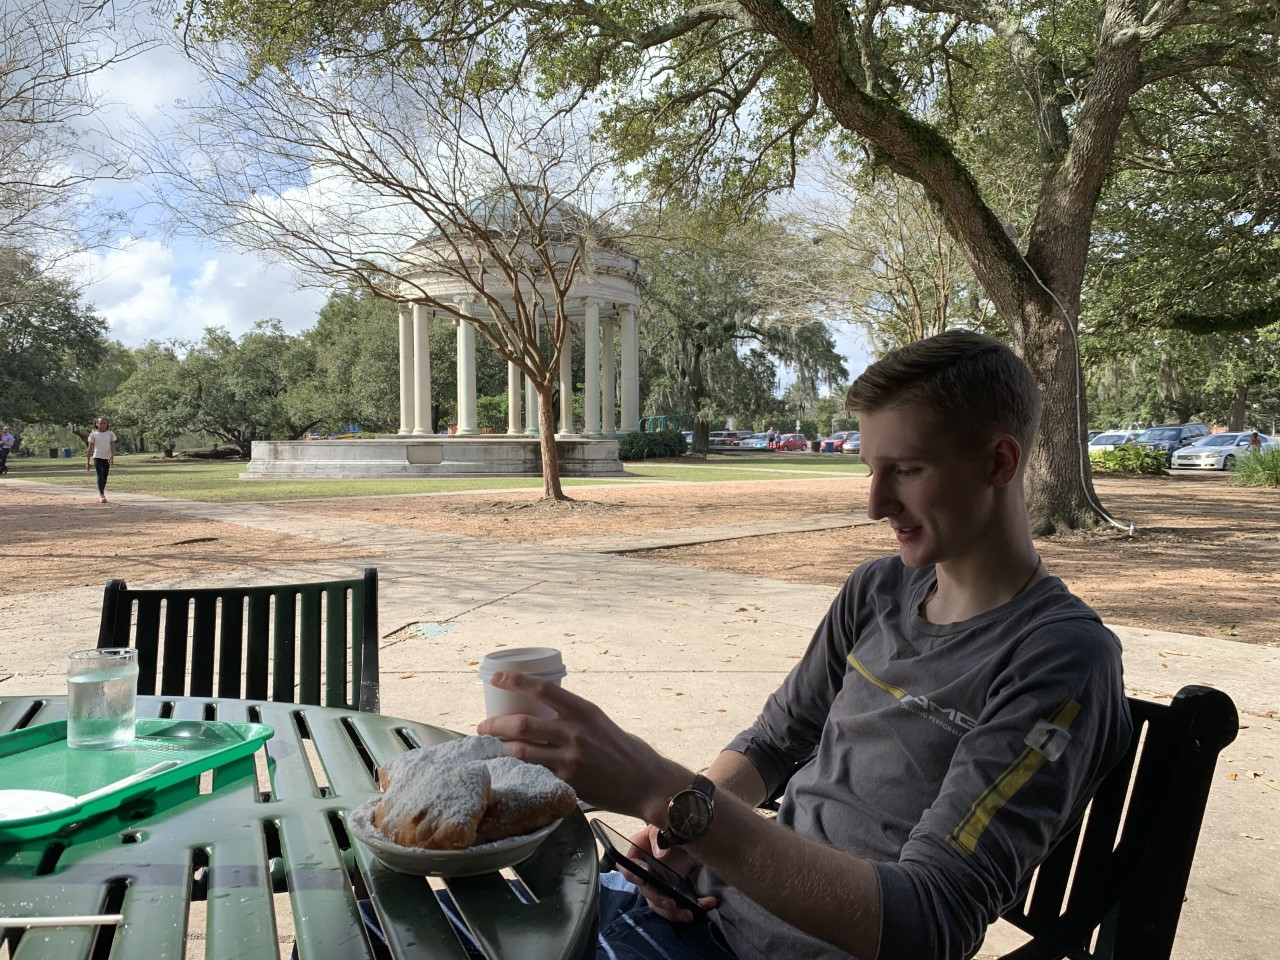 Relaxing in City Park in New Orleans: Jack Gilligan enjoys a little time away from the racetrack